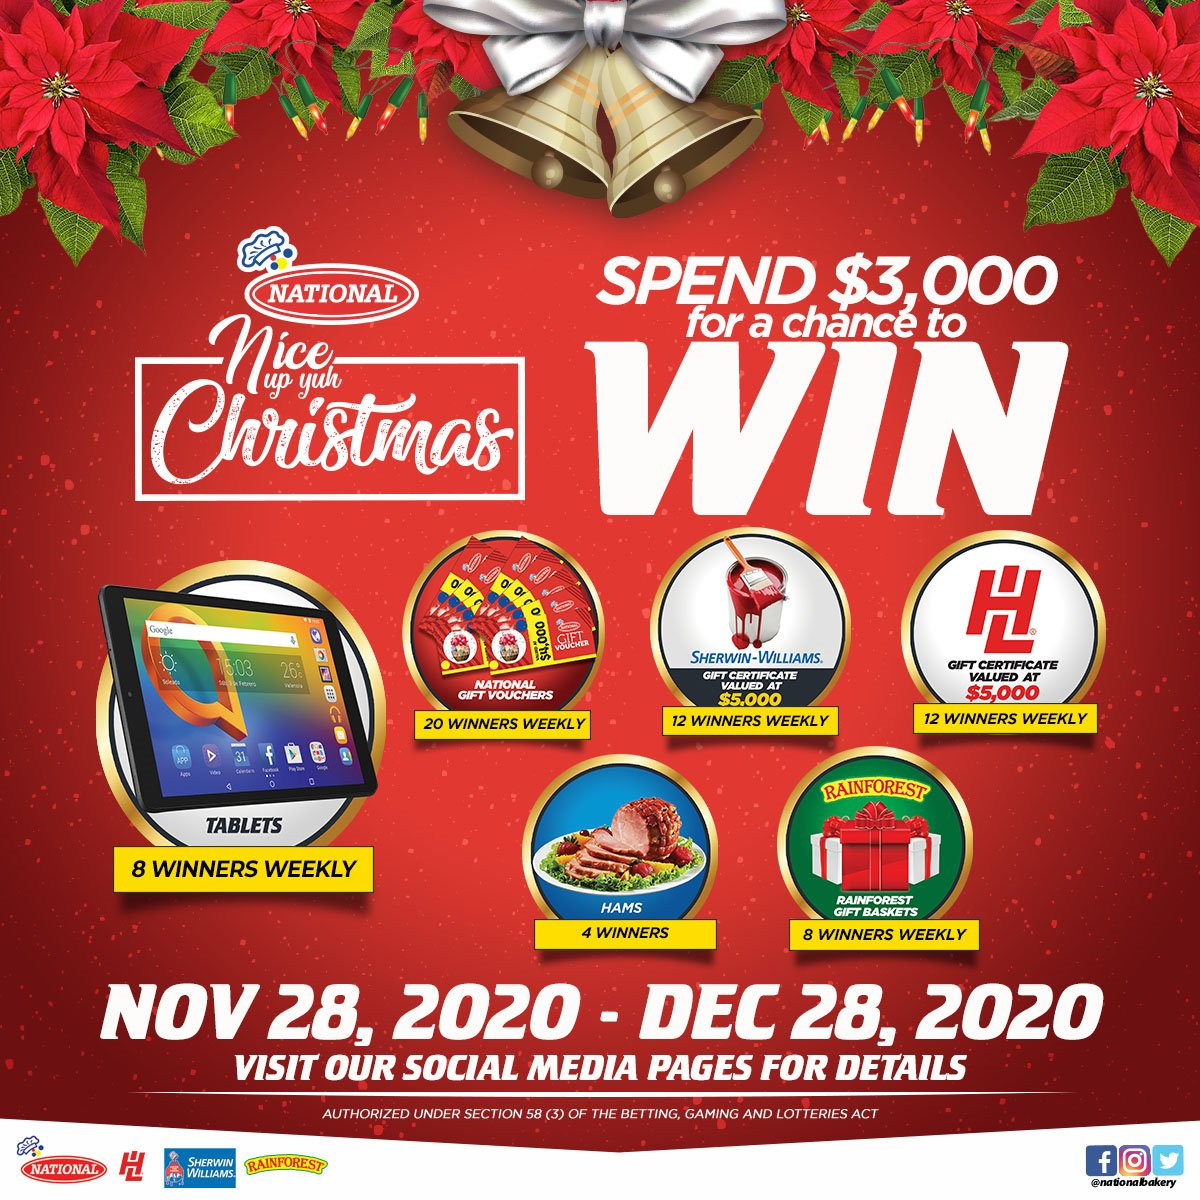 It's time to Nice Up Yuh Christmas! 🎄  Shop at National Wholesale Stores from now until Monday, December 28, 2020 and spend $3,000 for a chance to win amazing prizes!  ⬇️ See our terms and conditions below https://t.co/d2EPWUtwfH